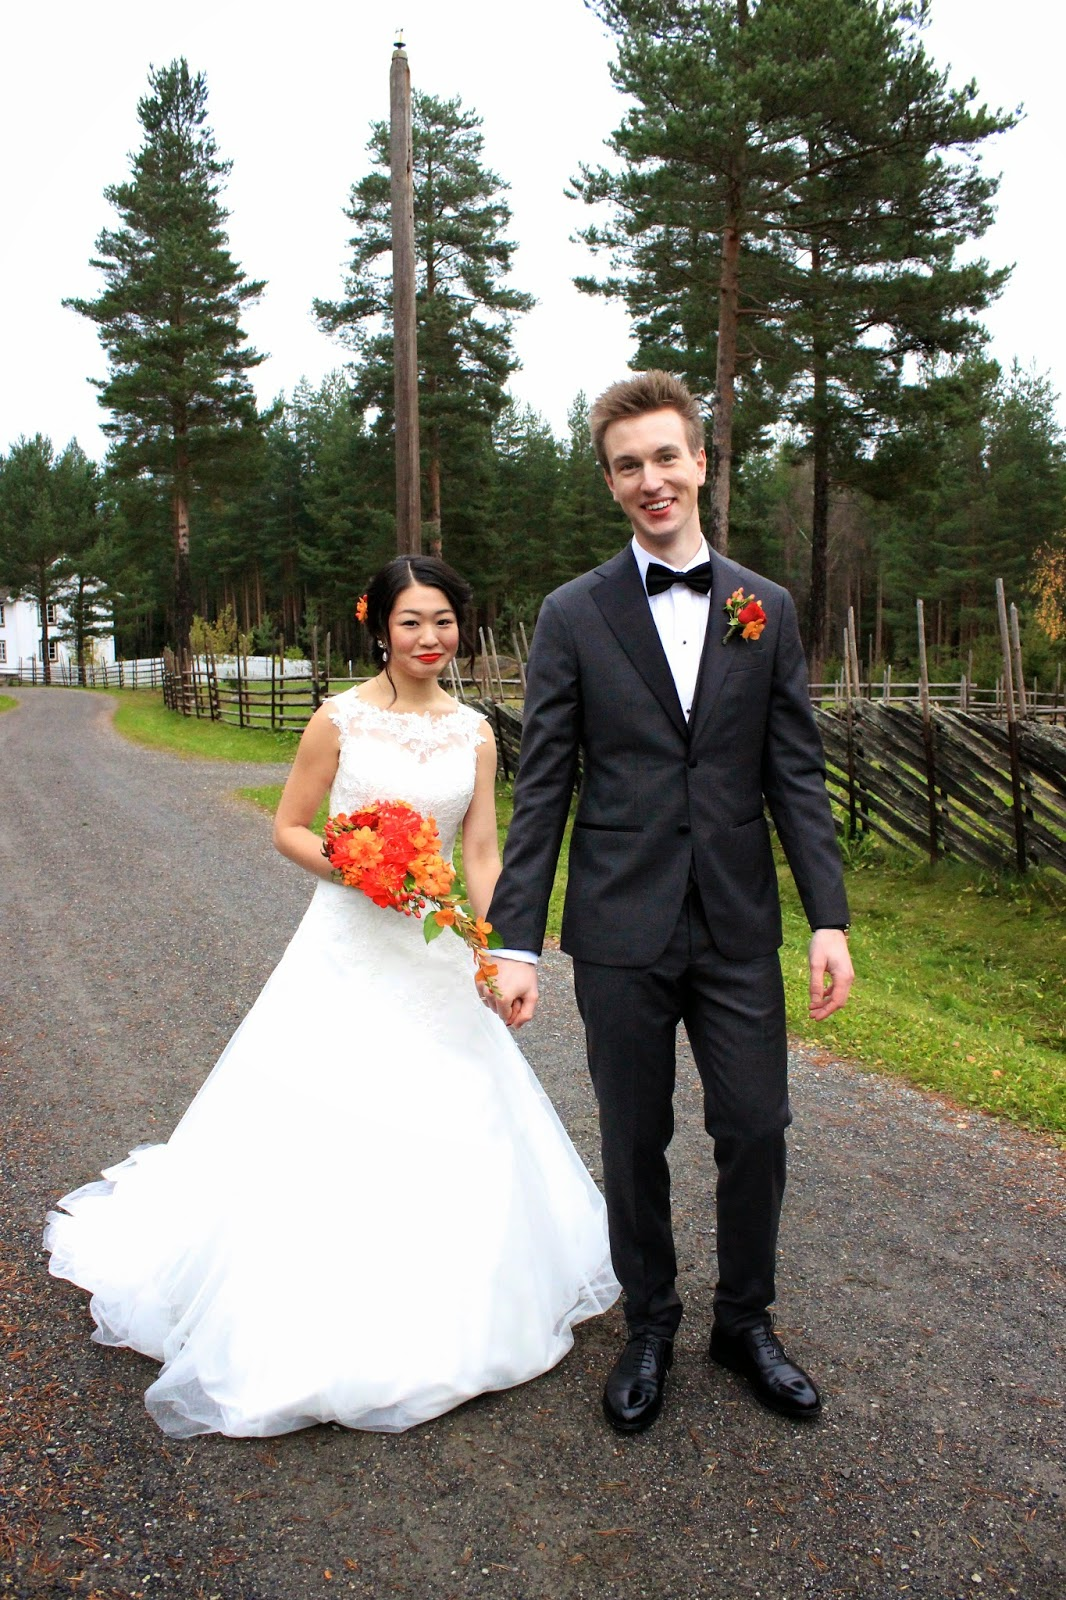 My Best Friend's Wedding in Norway